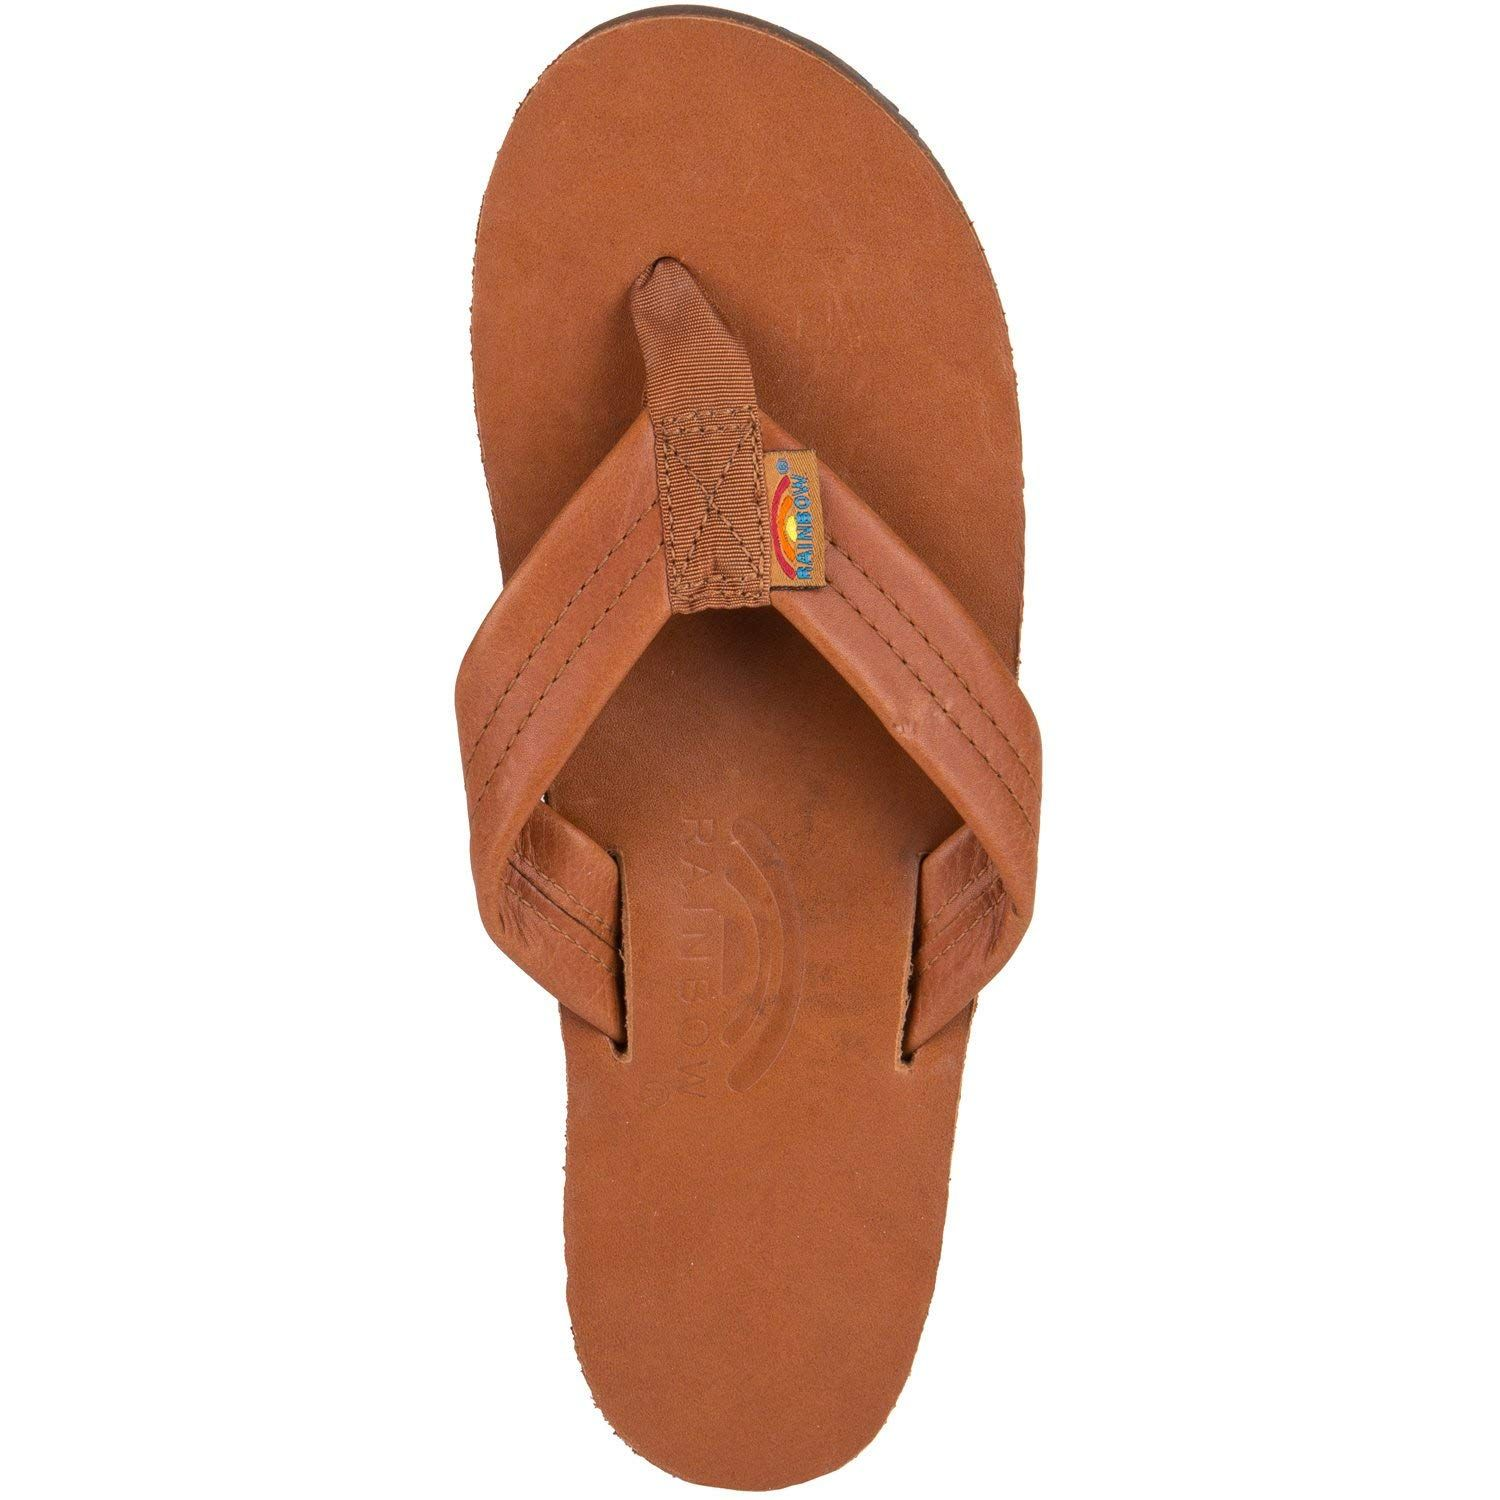 d8434c2007d1 Rainbow Womens Leather Wide Strap Single Layer Arch Sandal Mocha Size Large  / 7.5-8.5 B(M) US *** Check out this great product. (This is an affiliate  link) ...